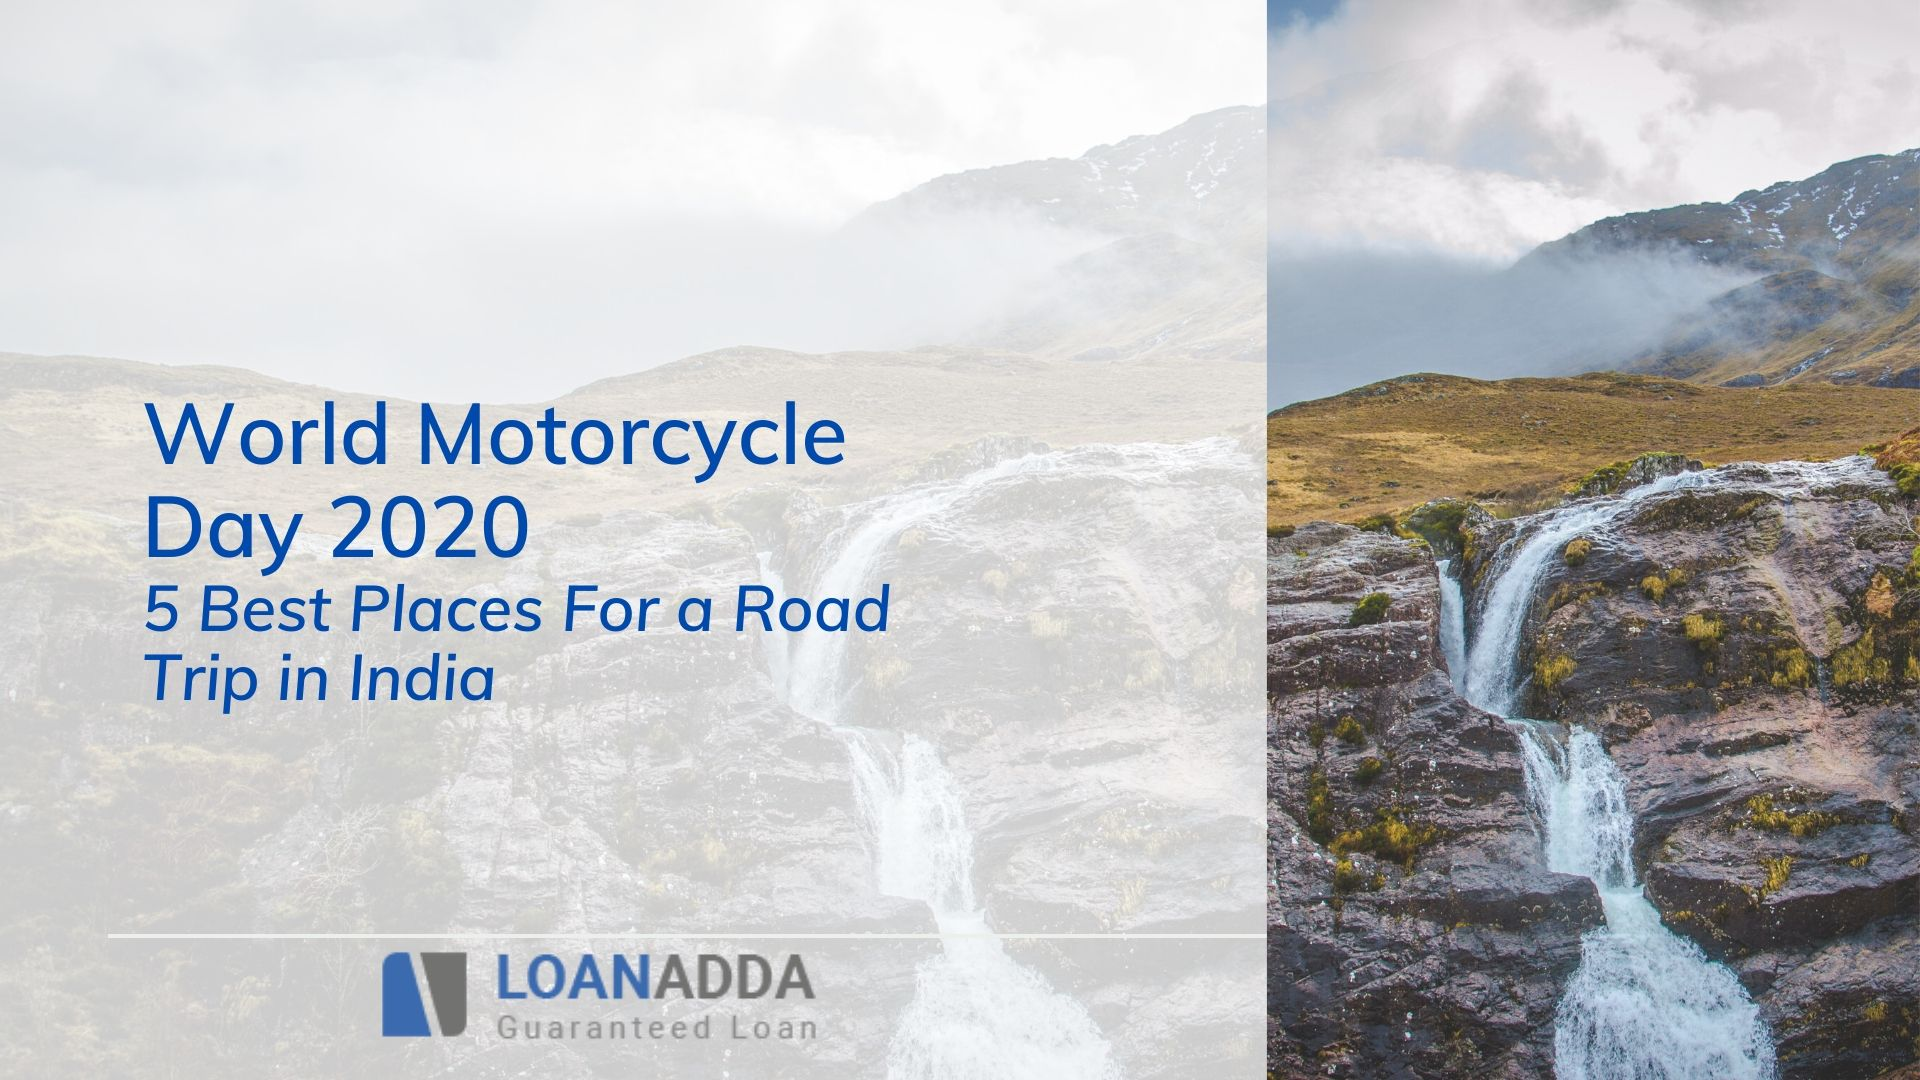 World Motorcycle Day 2020 - Here are 5 Best Places For a Road Trip in India